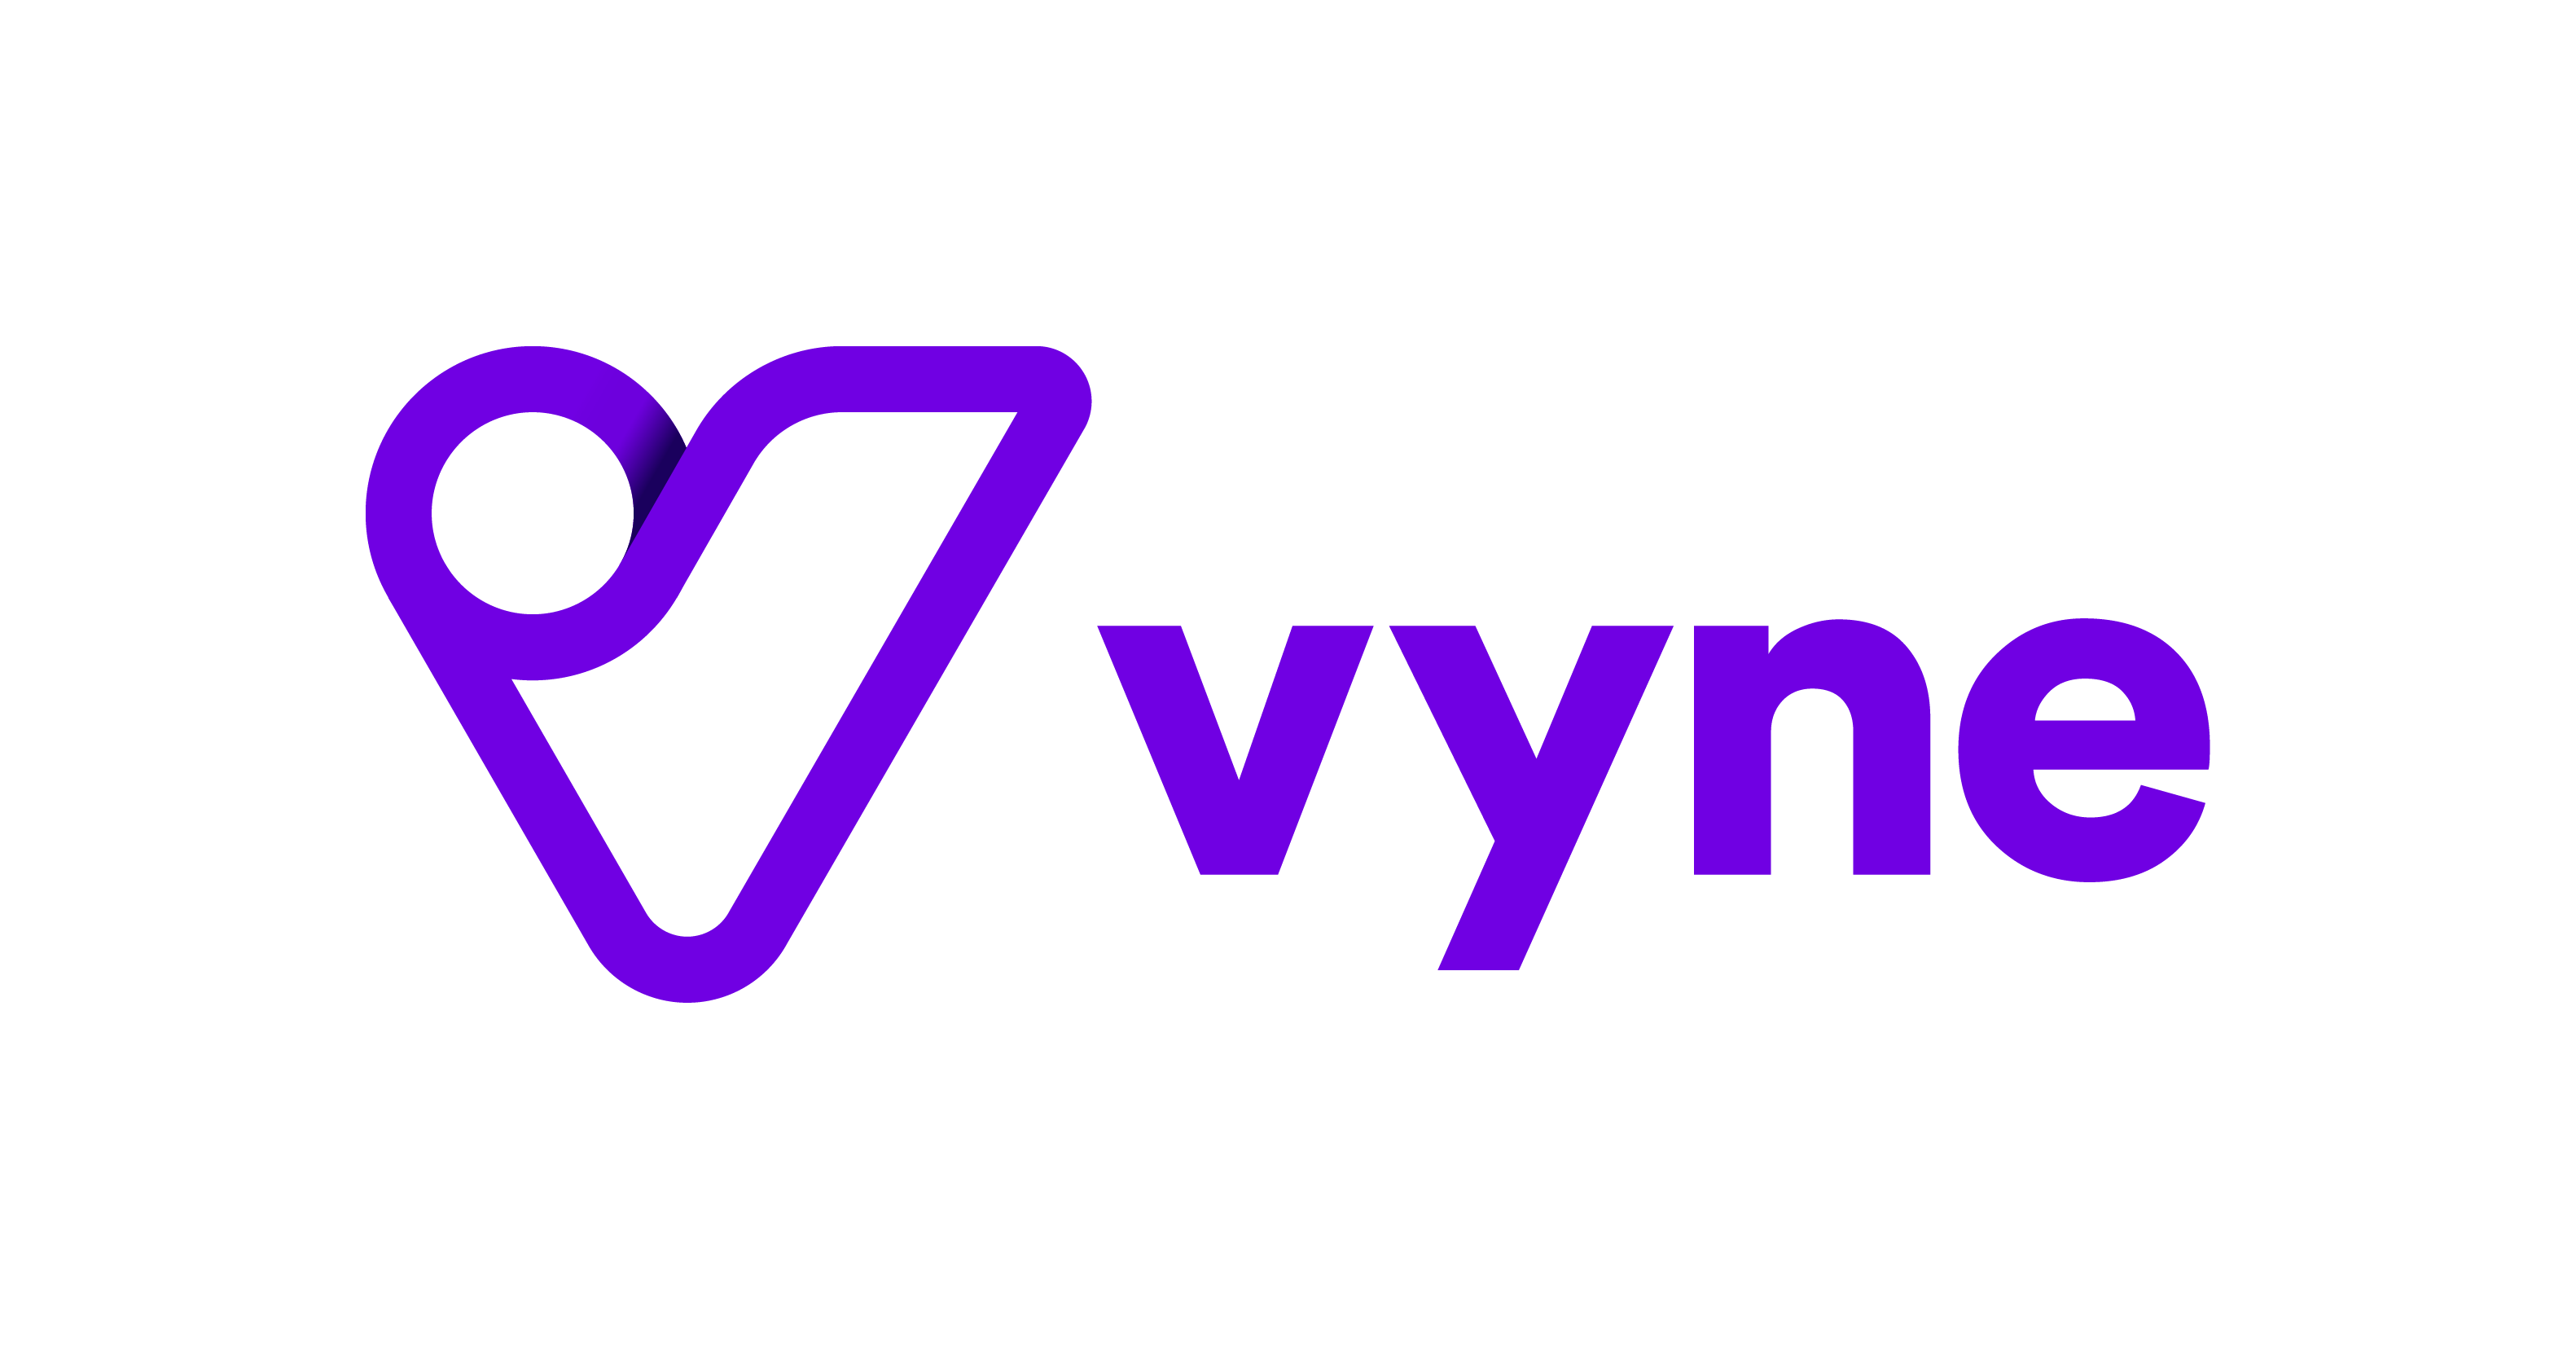 Vyne Raises $15.5 Million in Seed Funding to Build Challenger Payment Platform for Merchants